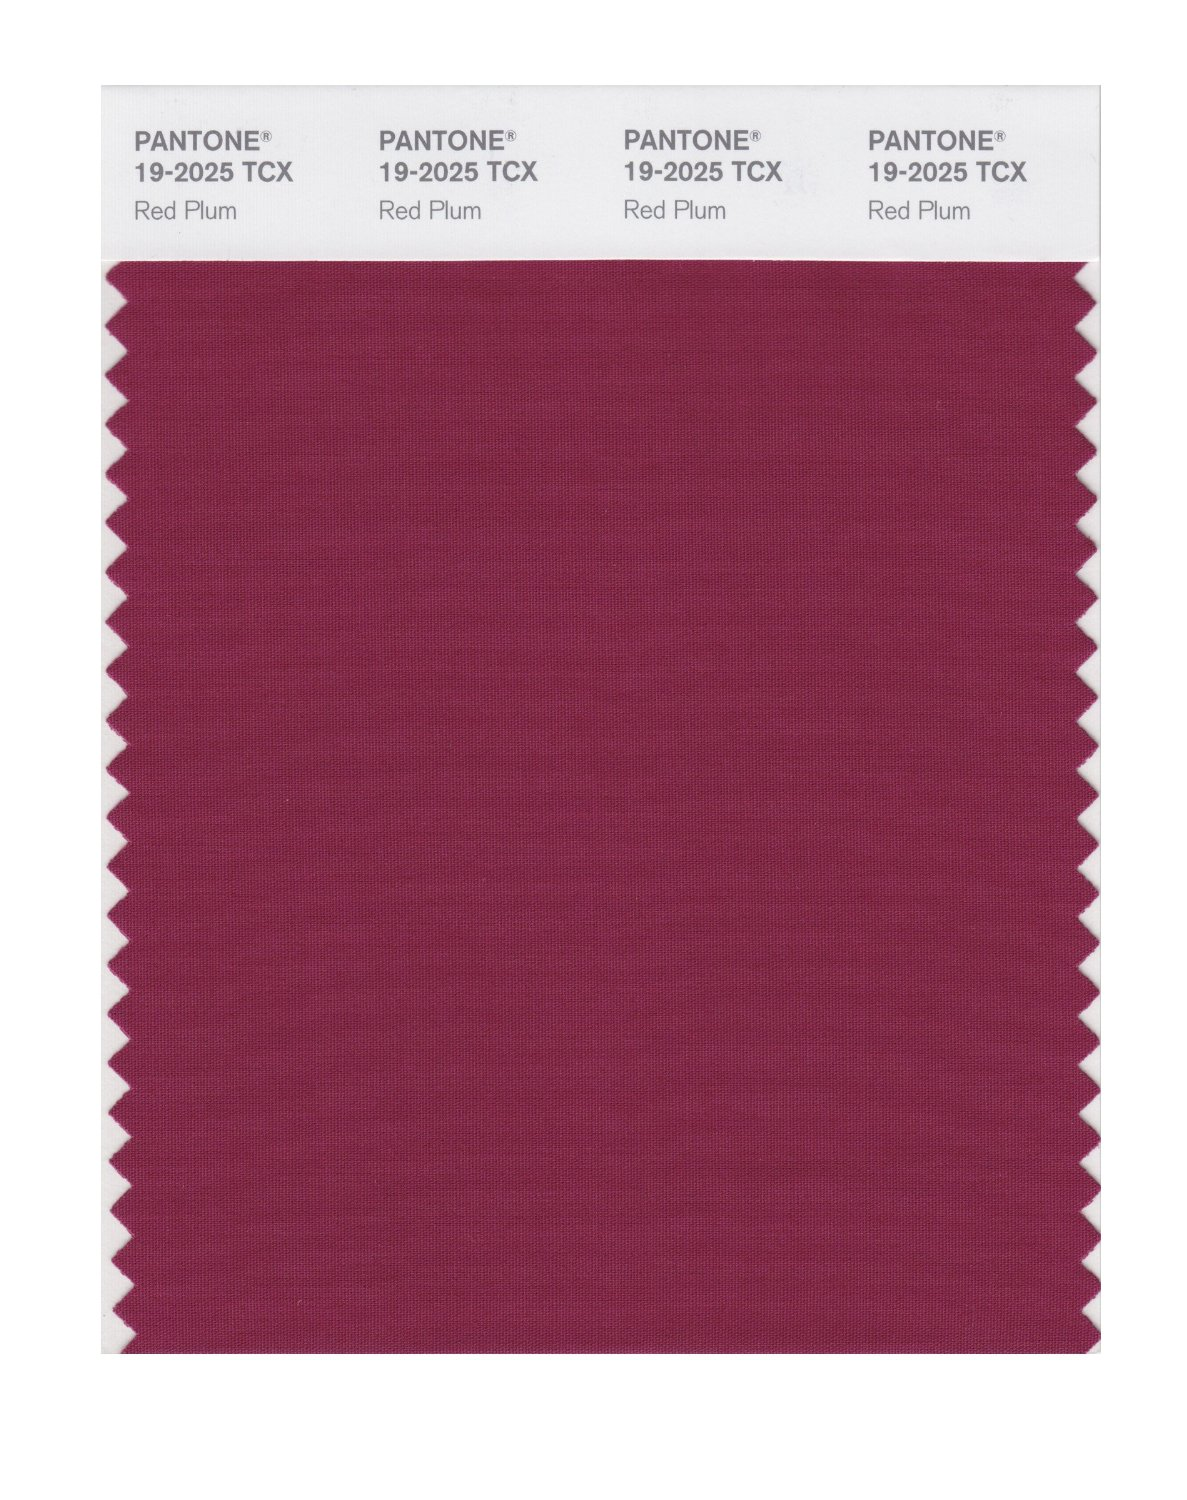 Pantone Smart Swatch 19-2025 Red Plum